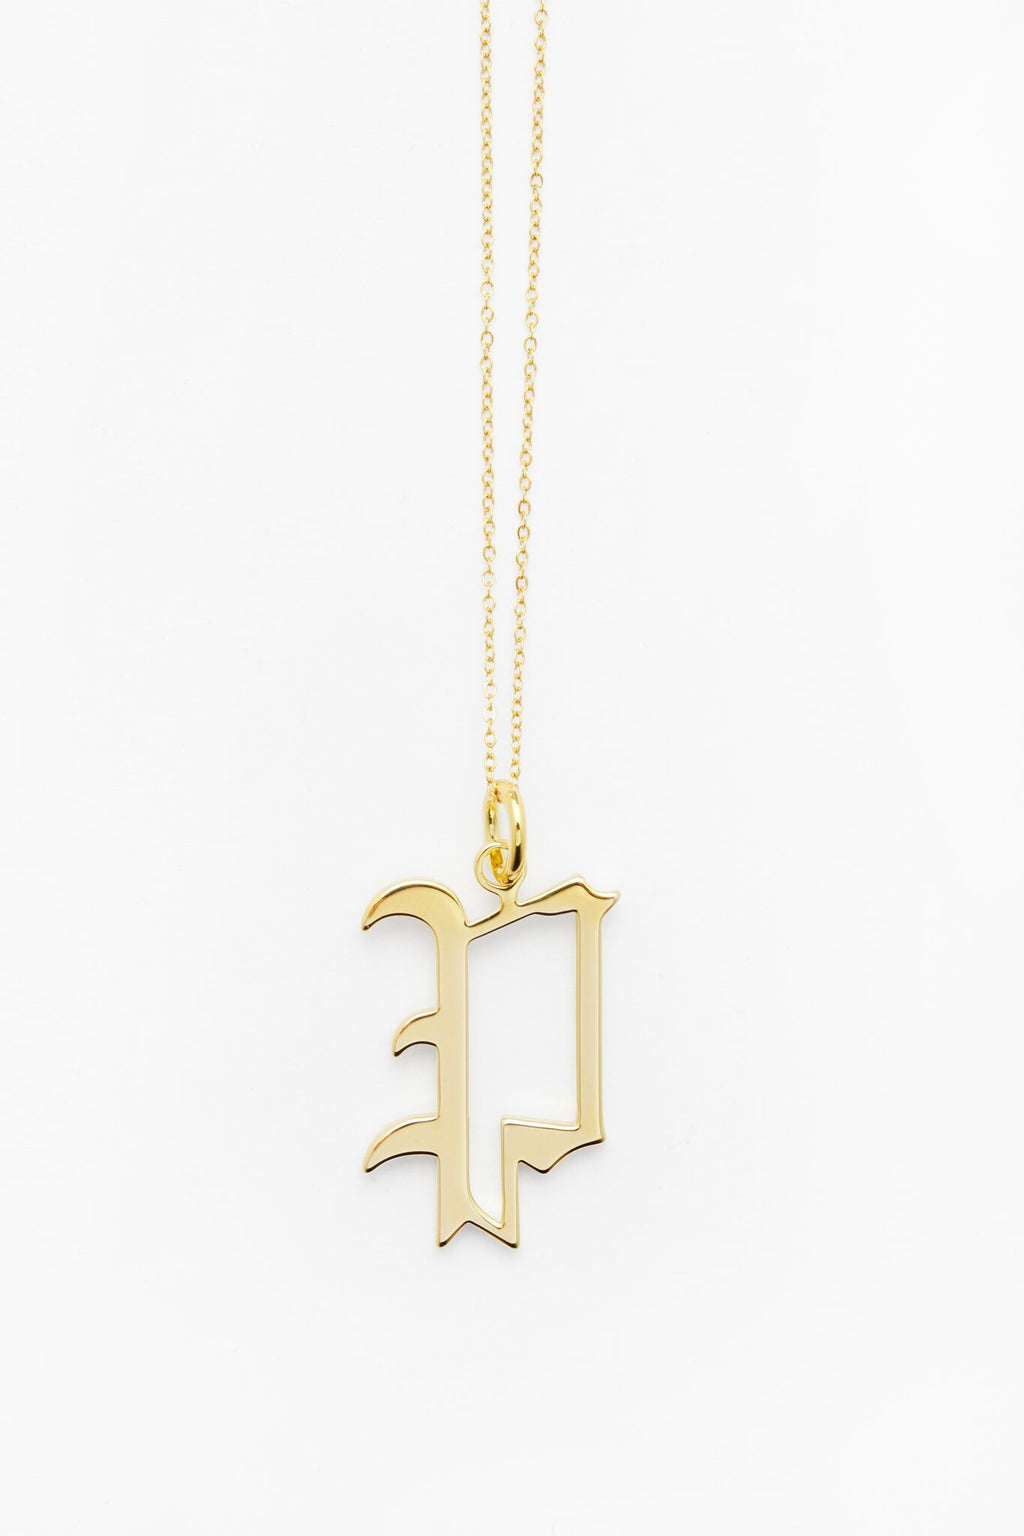 Gold Letter P Necklace